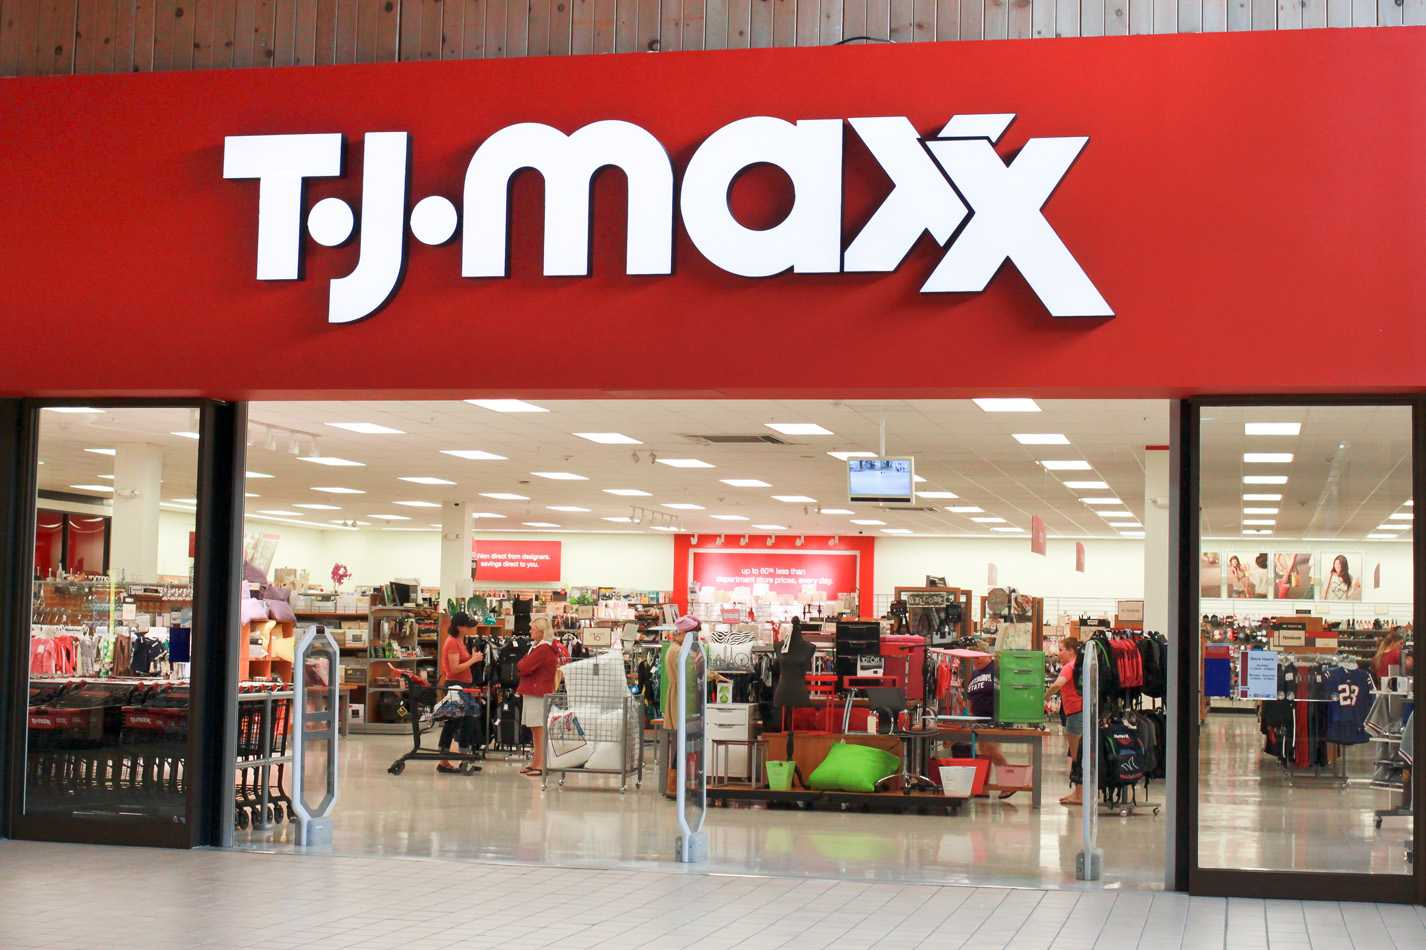 tj maxx hours, tj maxx holiday hours